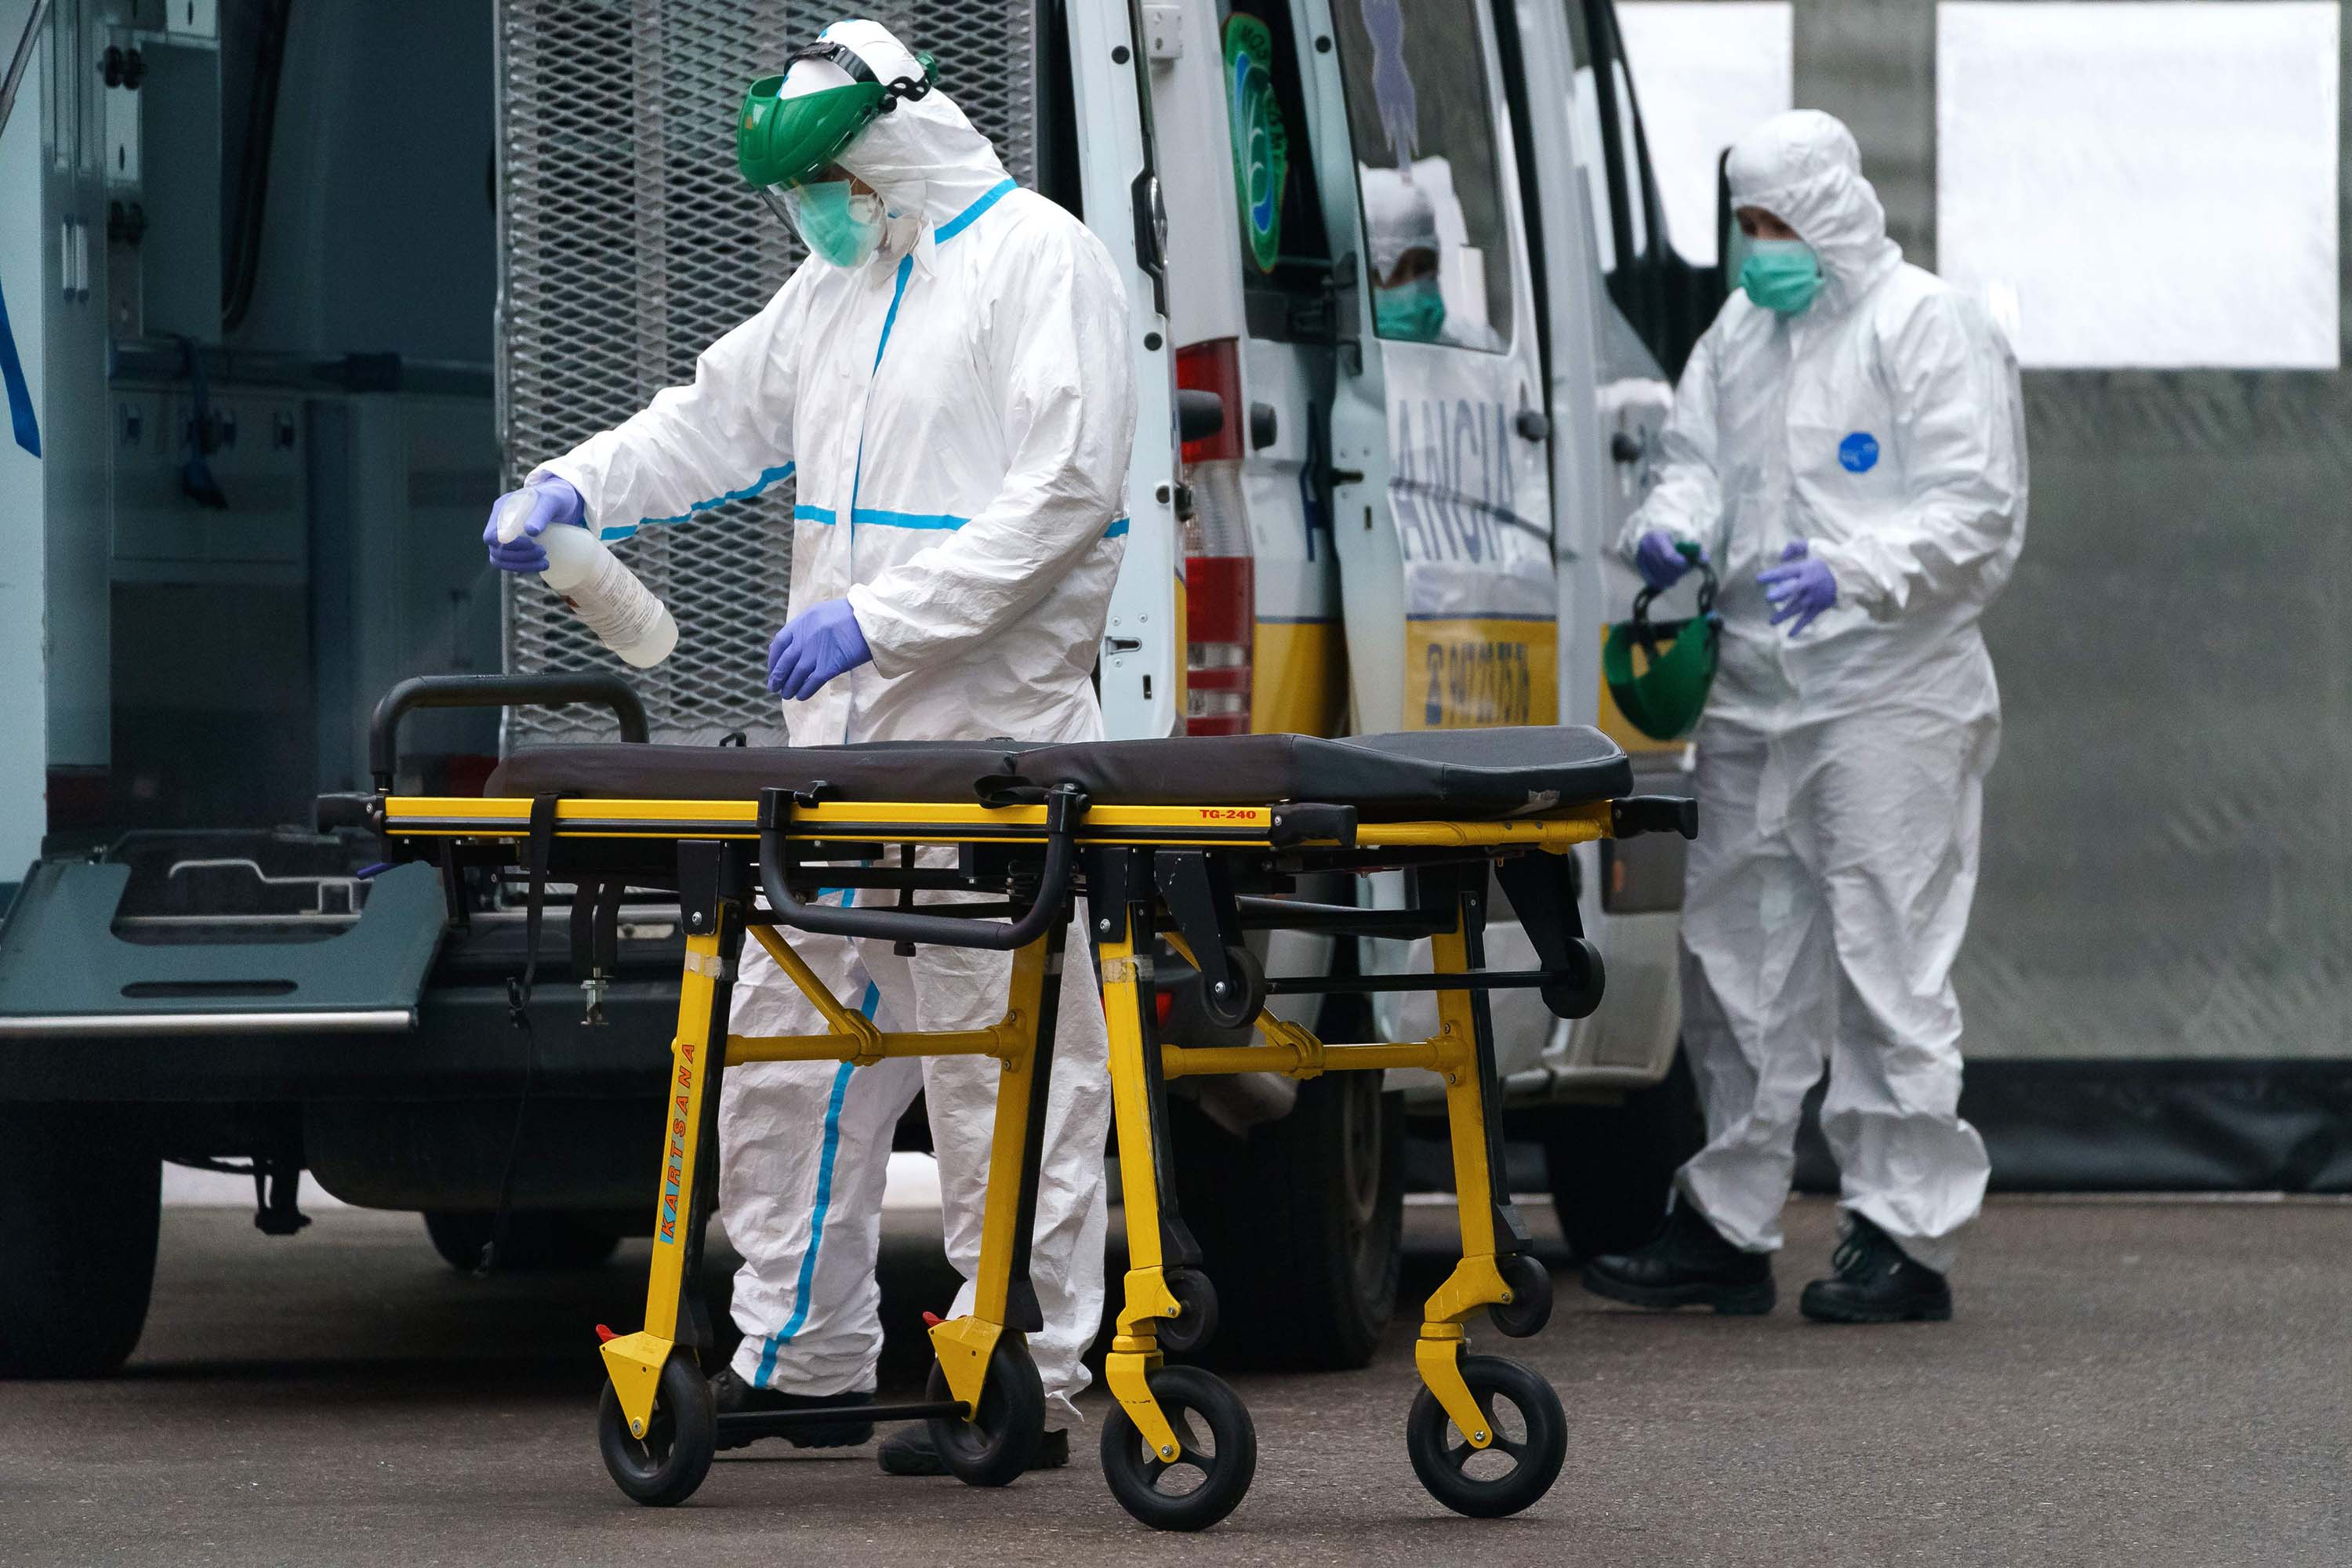 Paramedics disinfect a stretcher outside the Burgos Hospital in northern Spain on April 2.